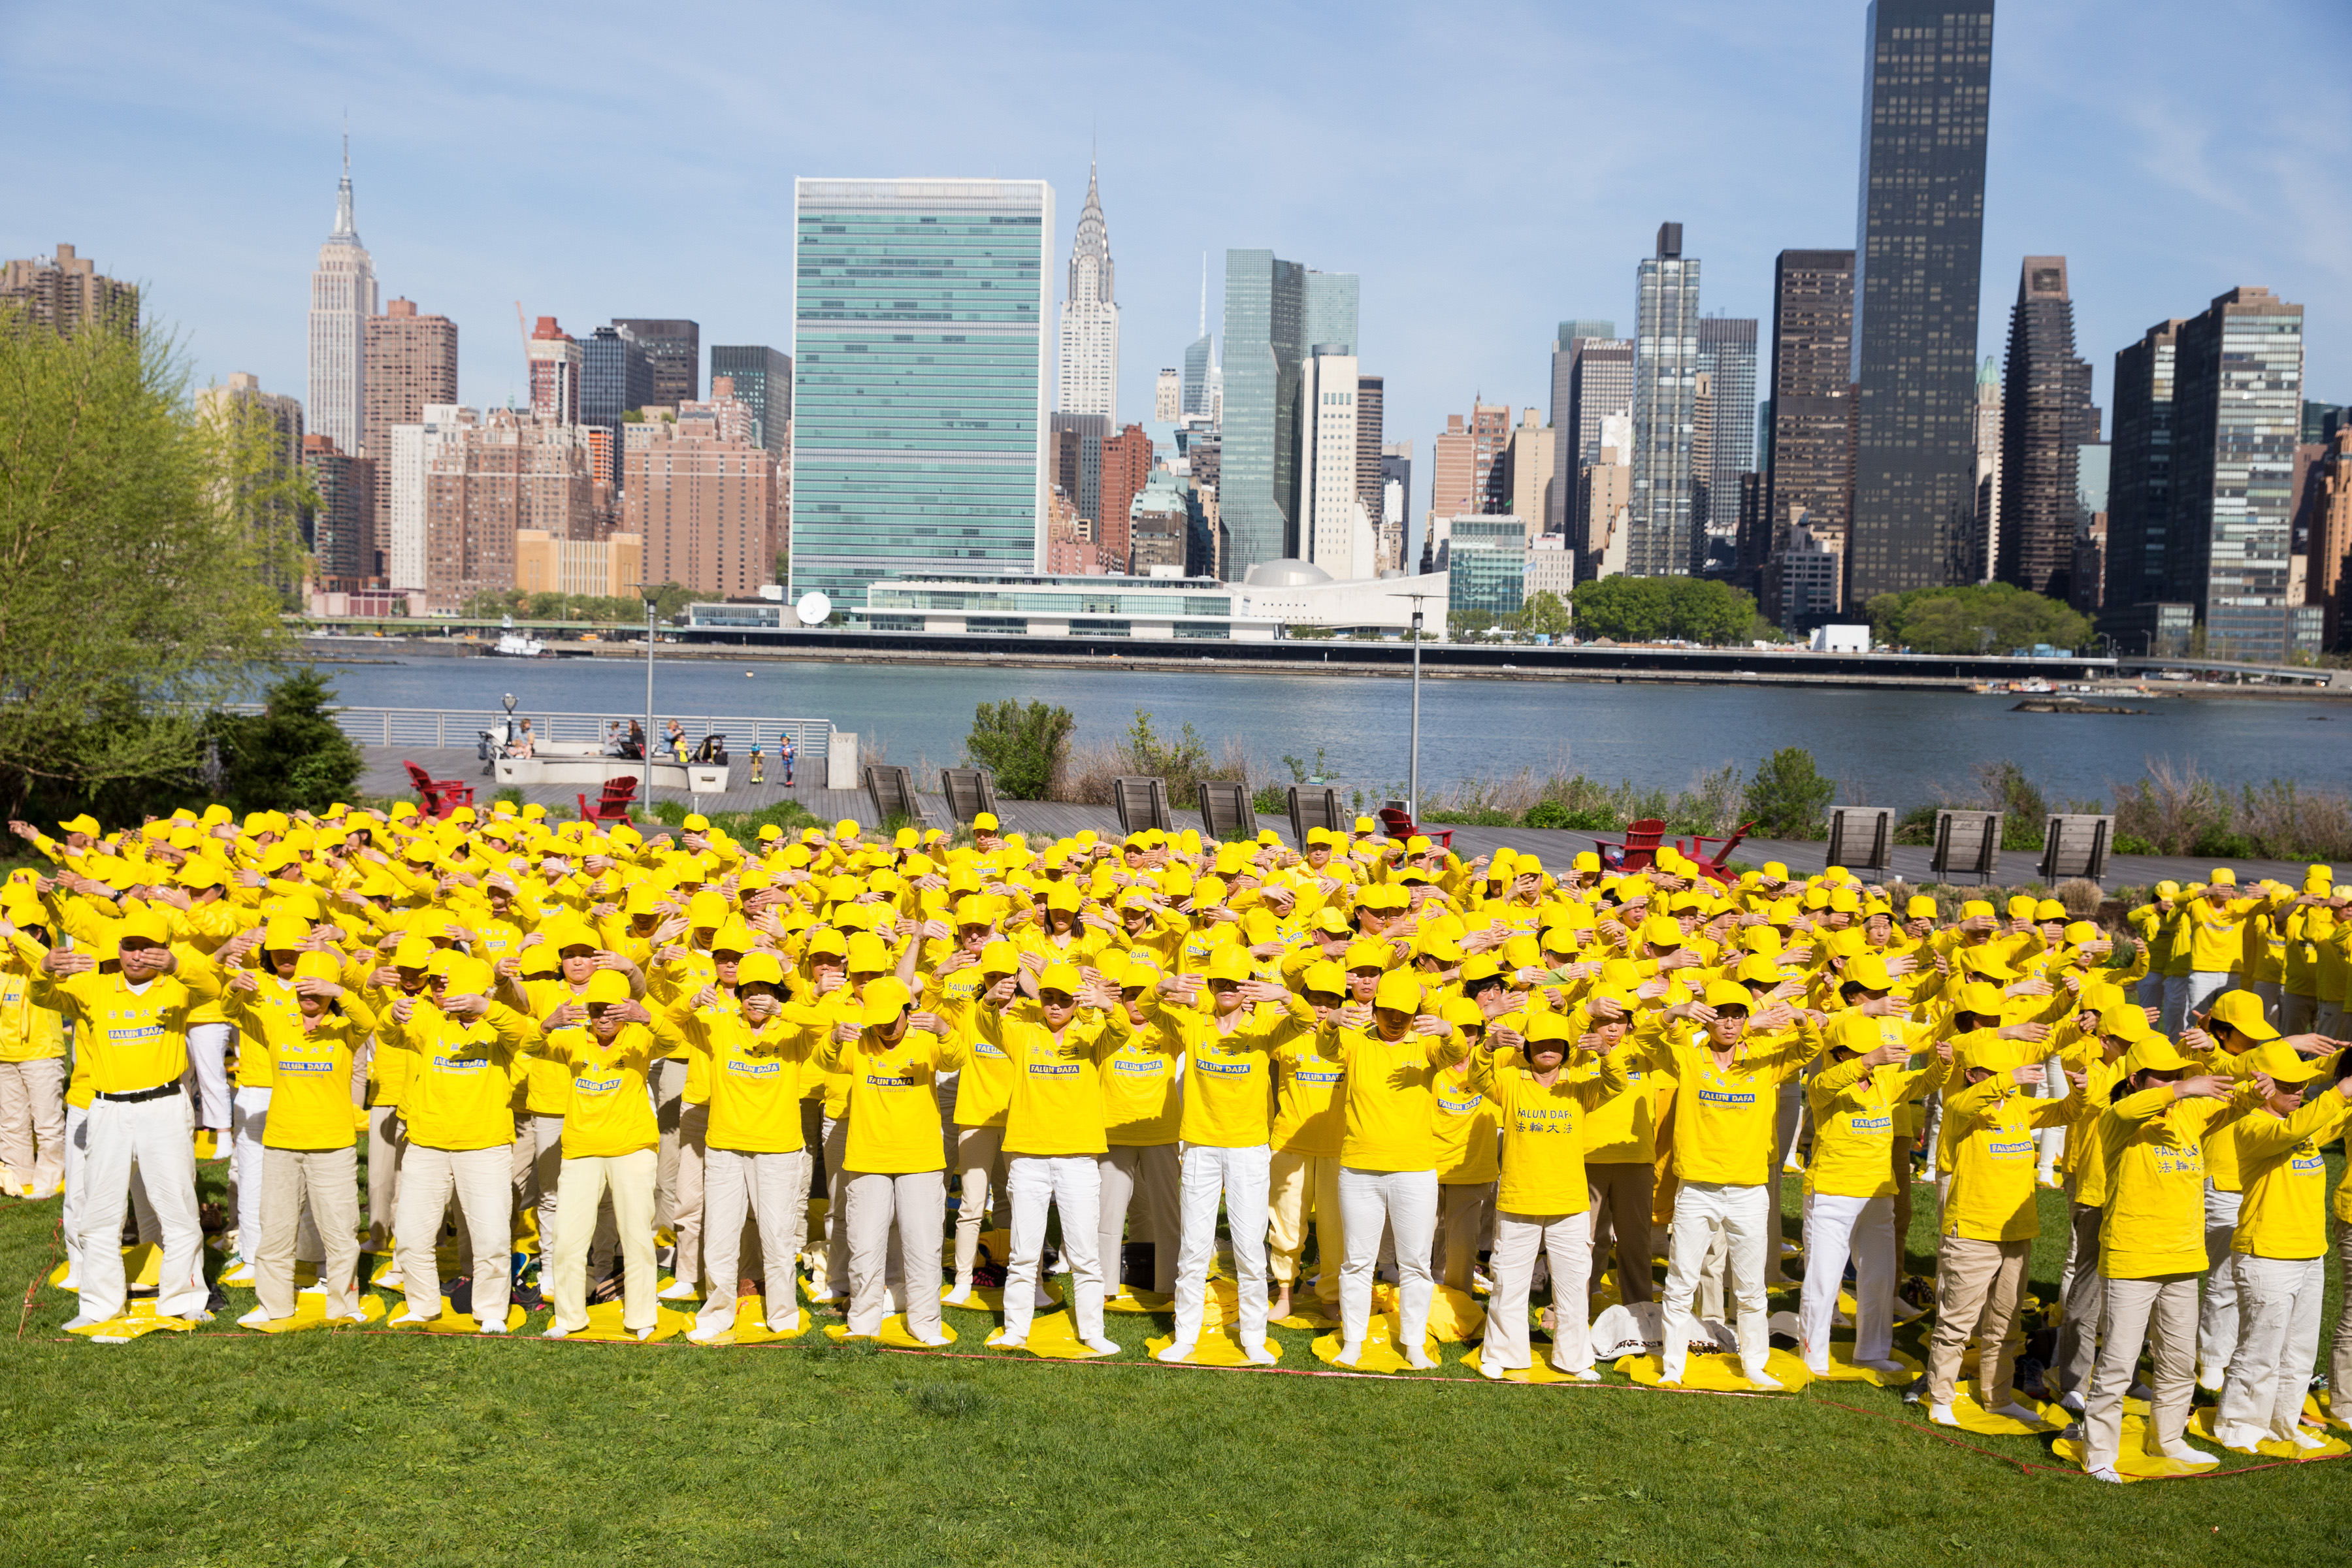 """Over a thousand Falun Gong practitioners from New York, Taiwan, and other Asian countries form the Chinese characters for """"Falun Dafa"""" at Gantry Plaza State Park on May 12, 2016. (Larry Dye/Epoch Times)"""